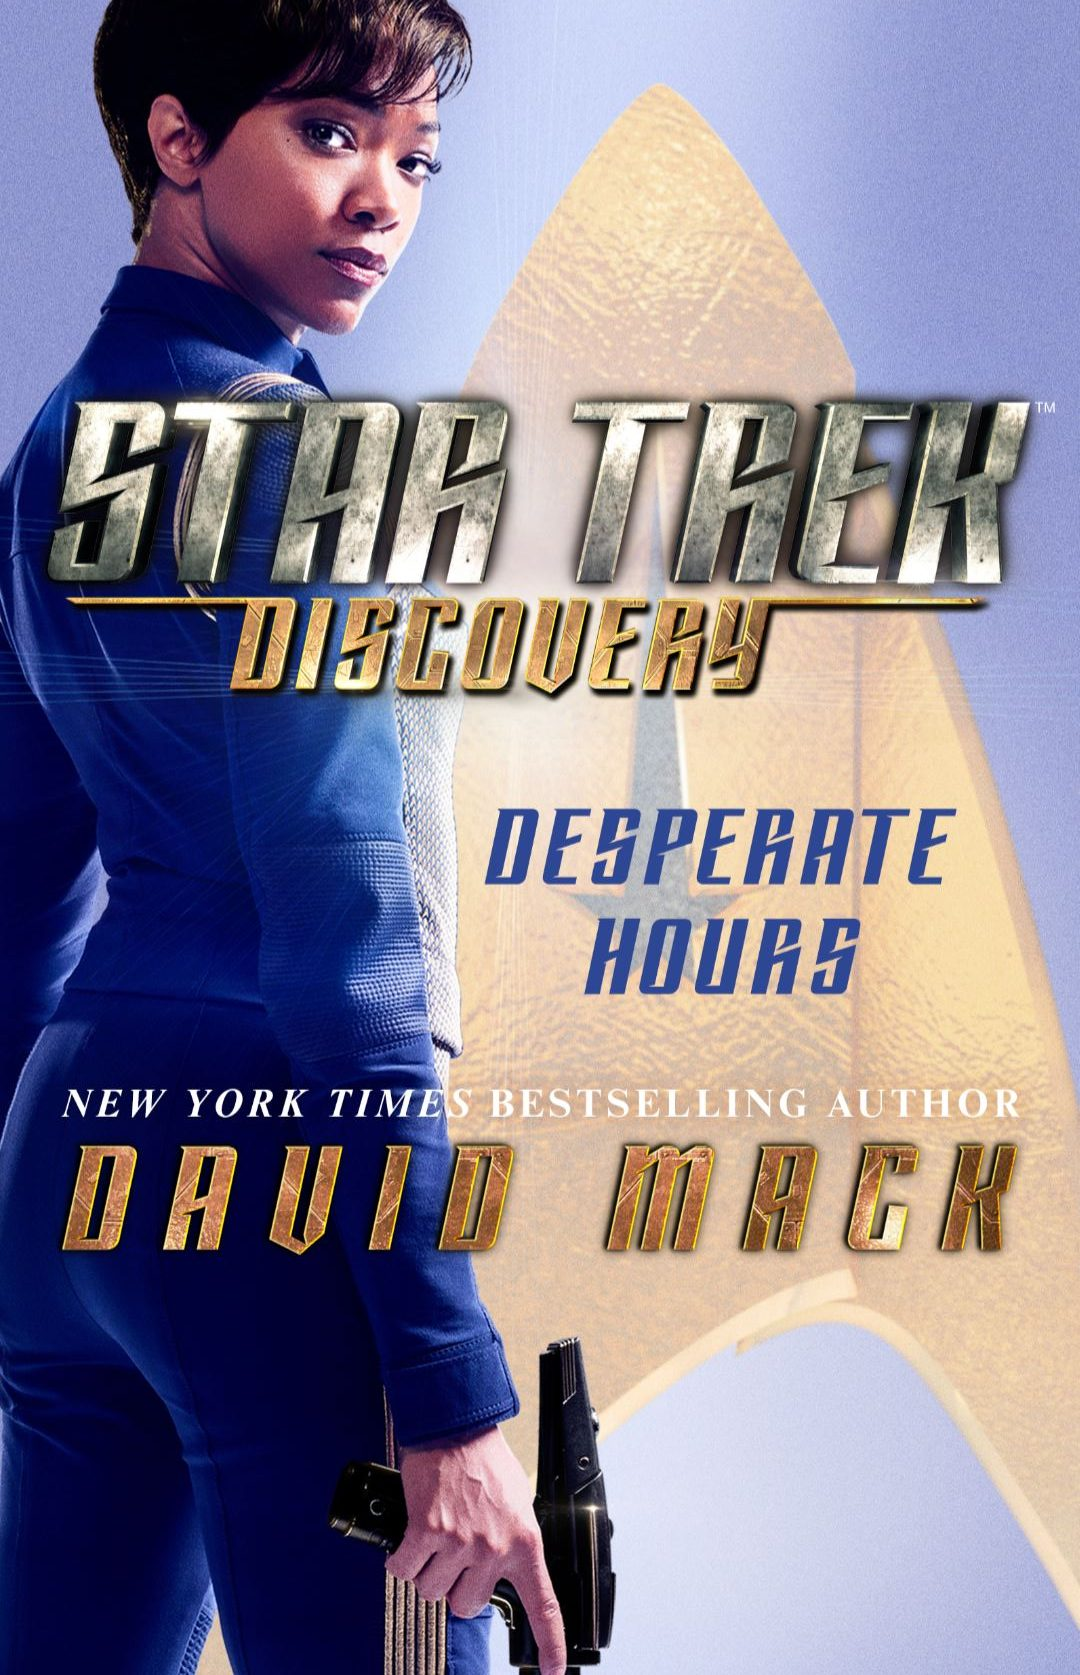 Star Trek Discovery Desperate Hours by David Mack